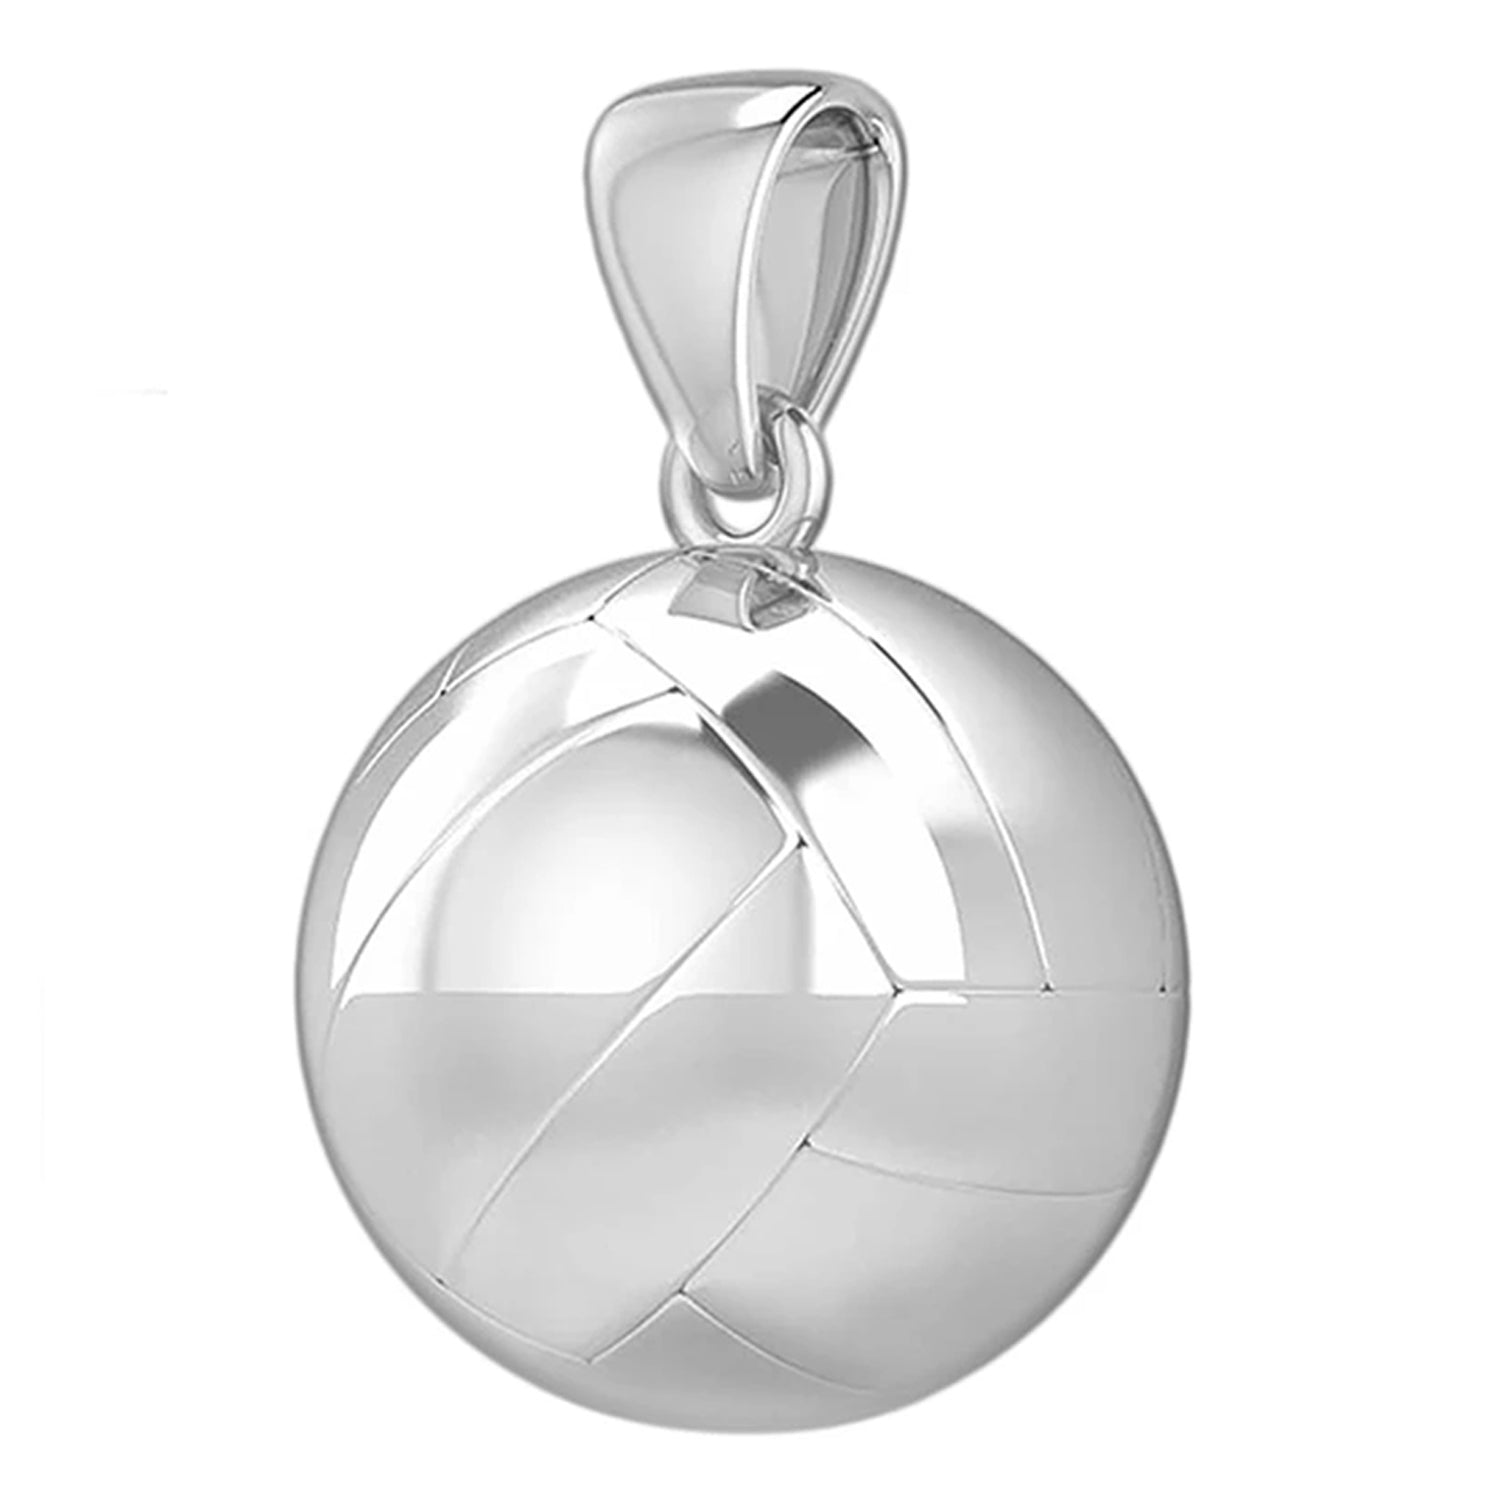 Volley Ball Necklace In 3D - Pendant Only